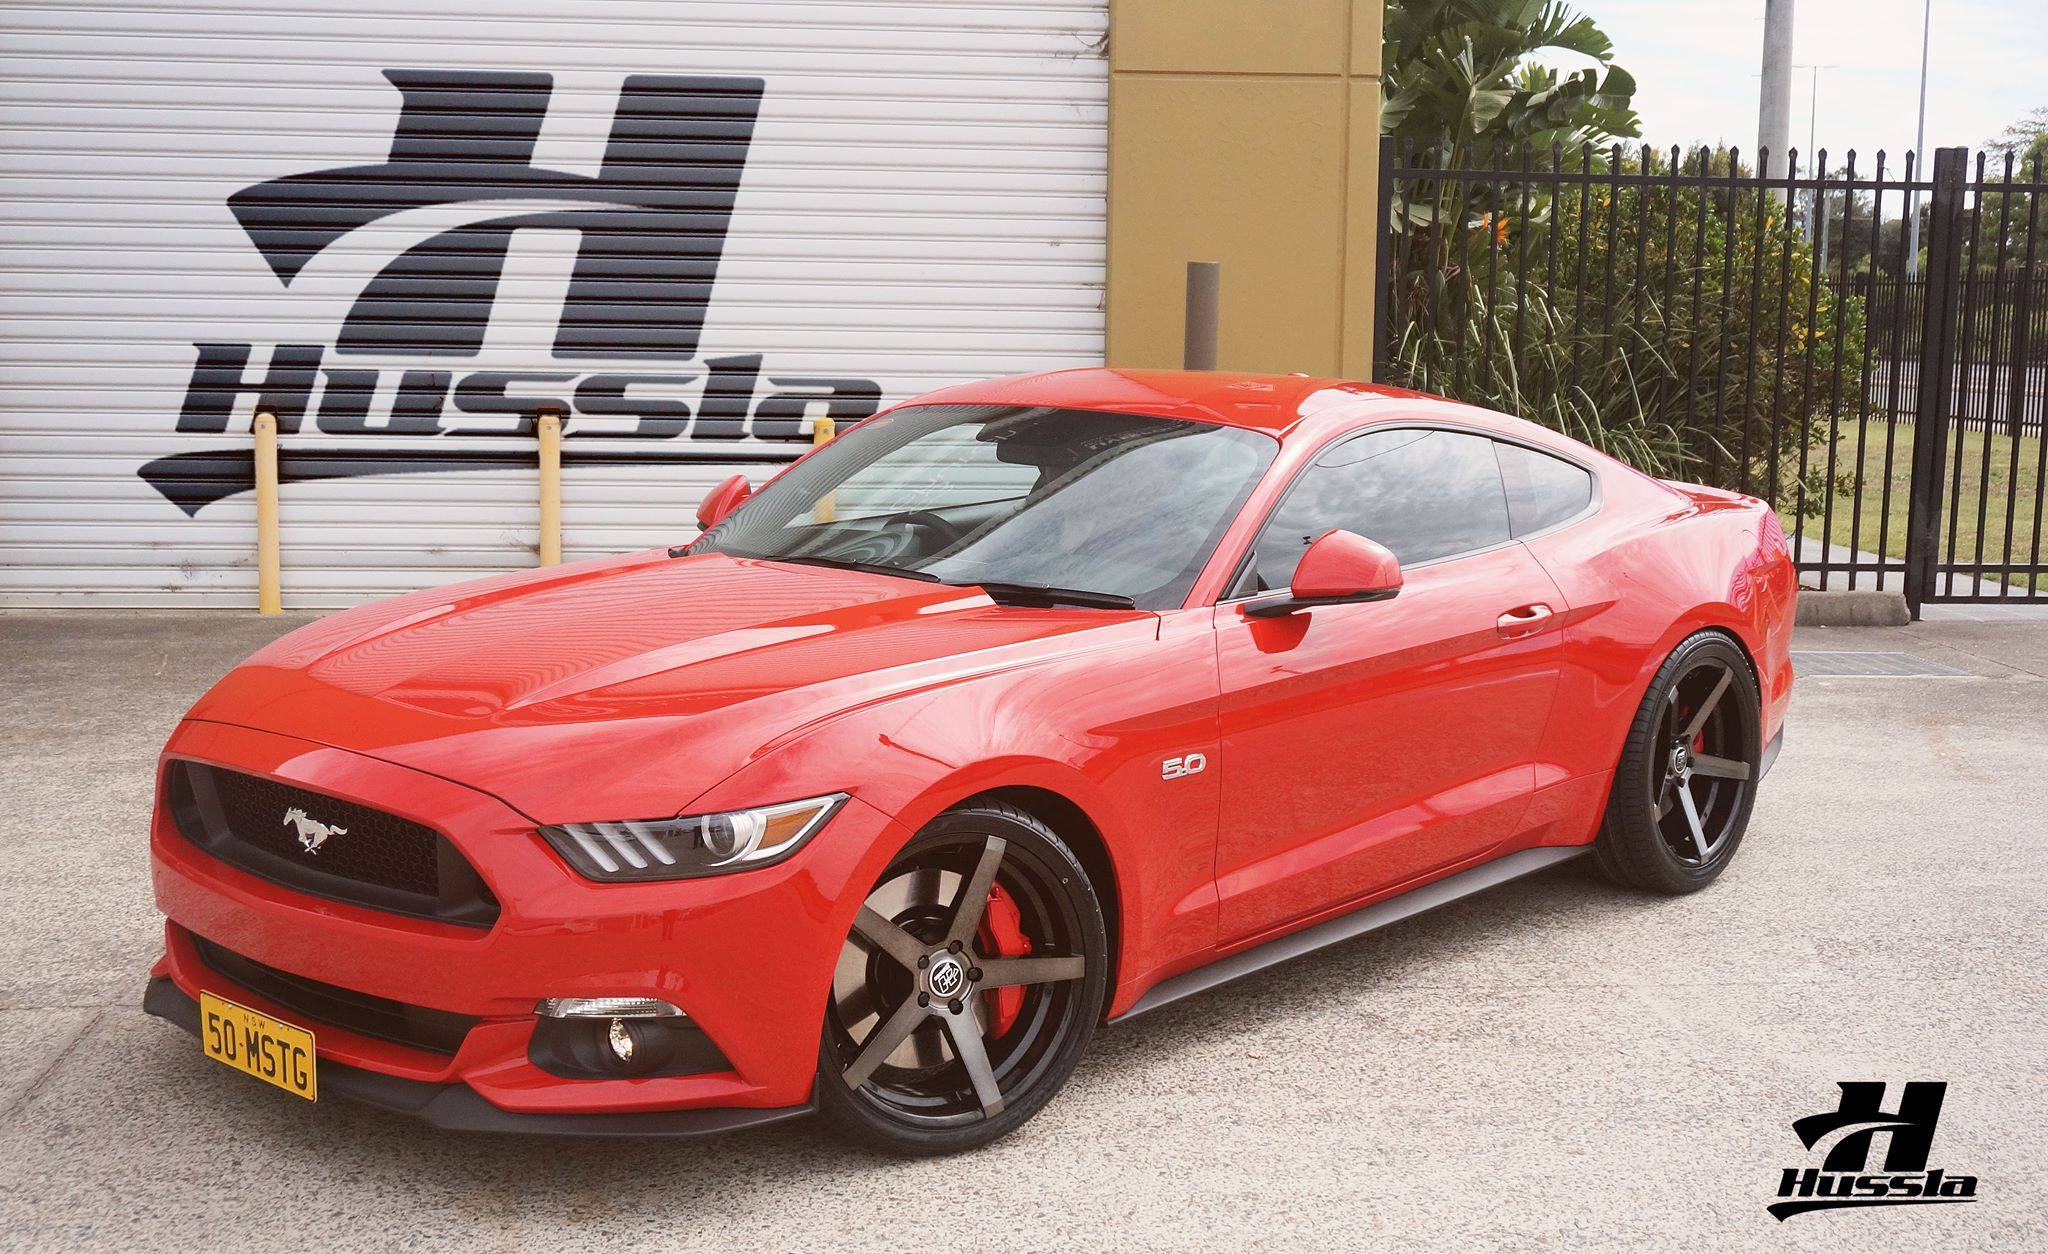 cherry-red-mustang-with-red-beast-with-hussla-zane-wheels-and-lowered-suspension